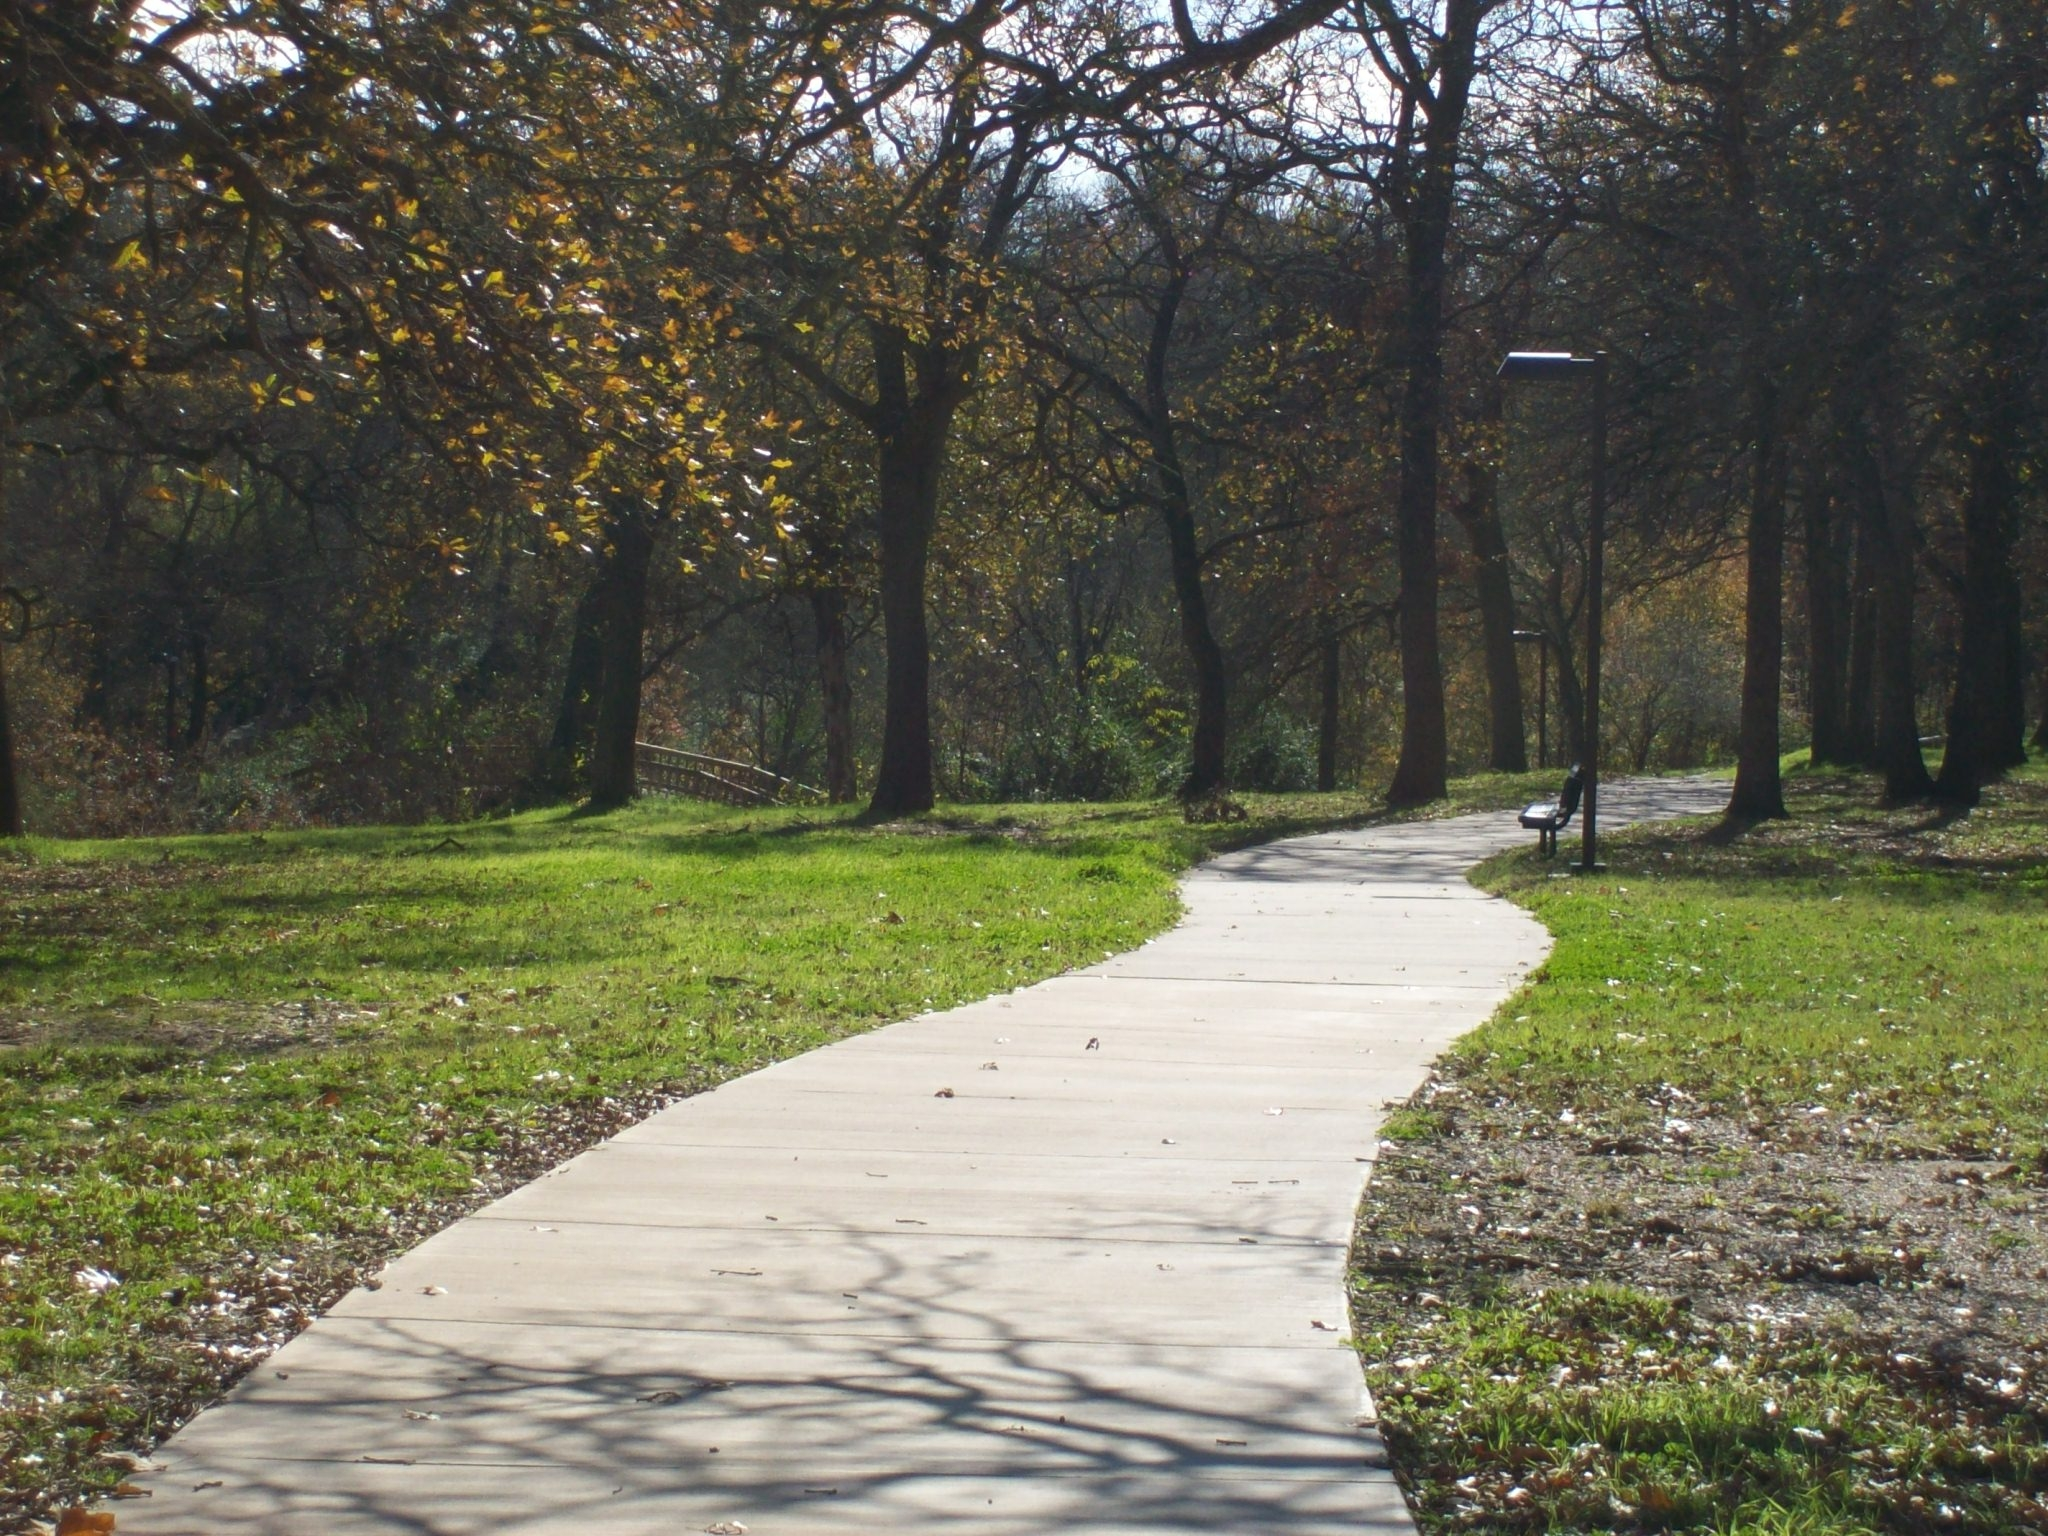 Paved trail in the woods